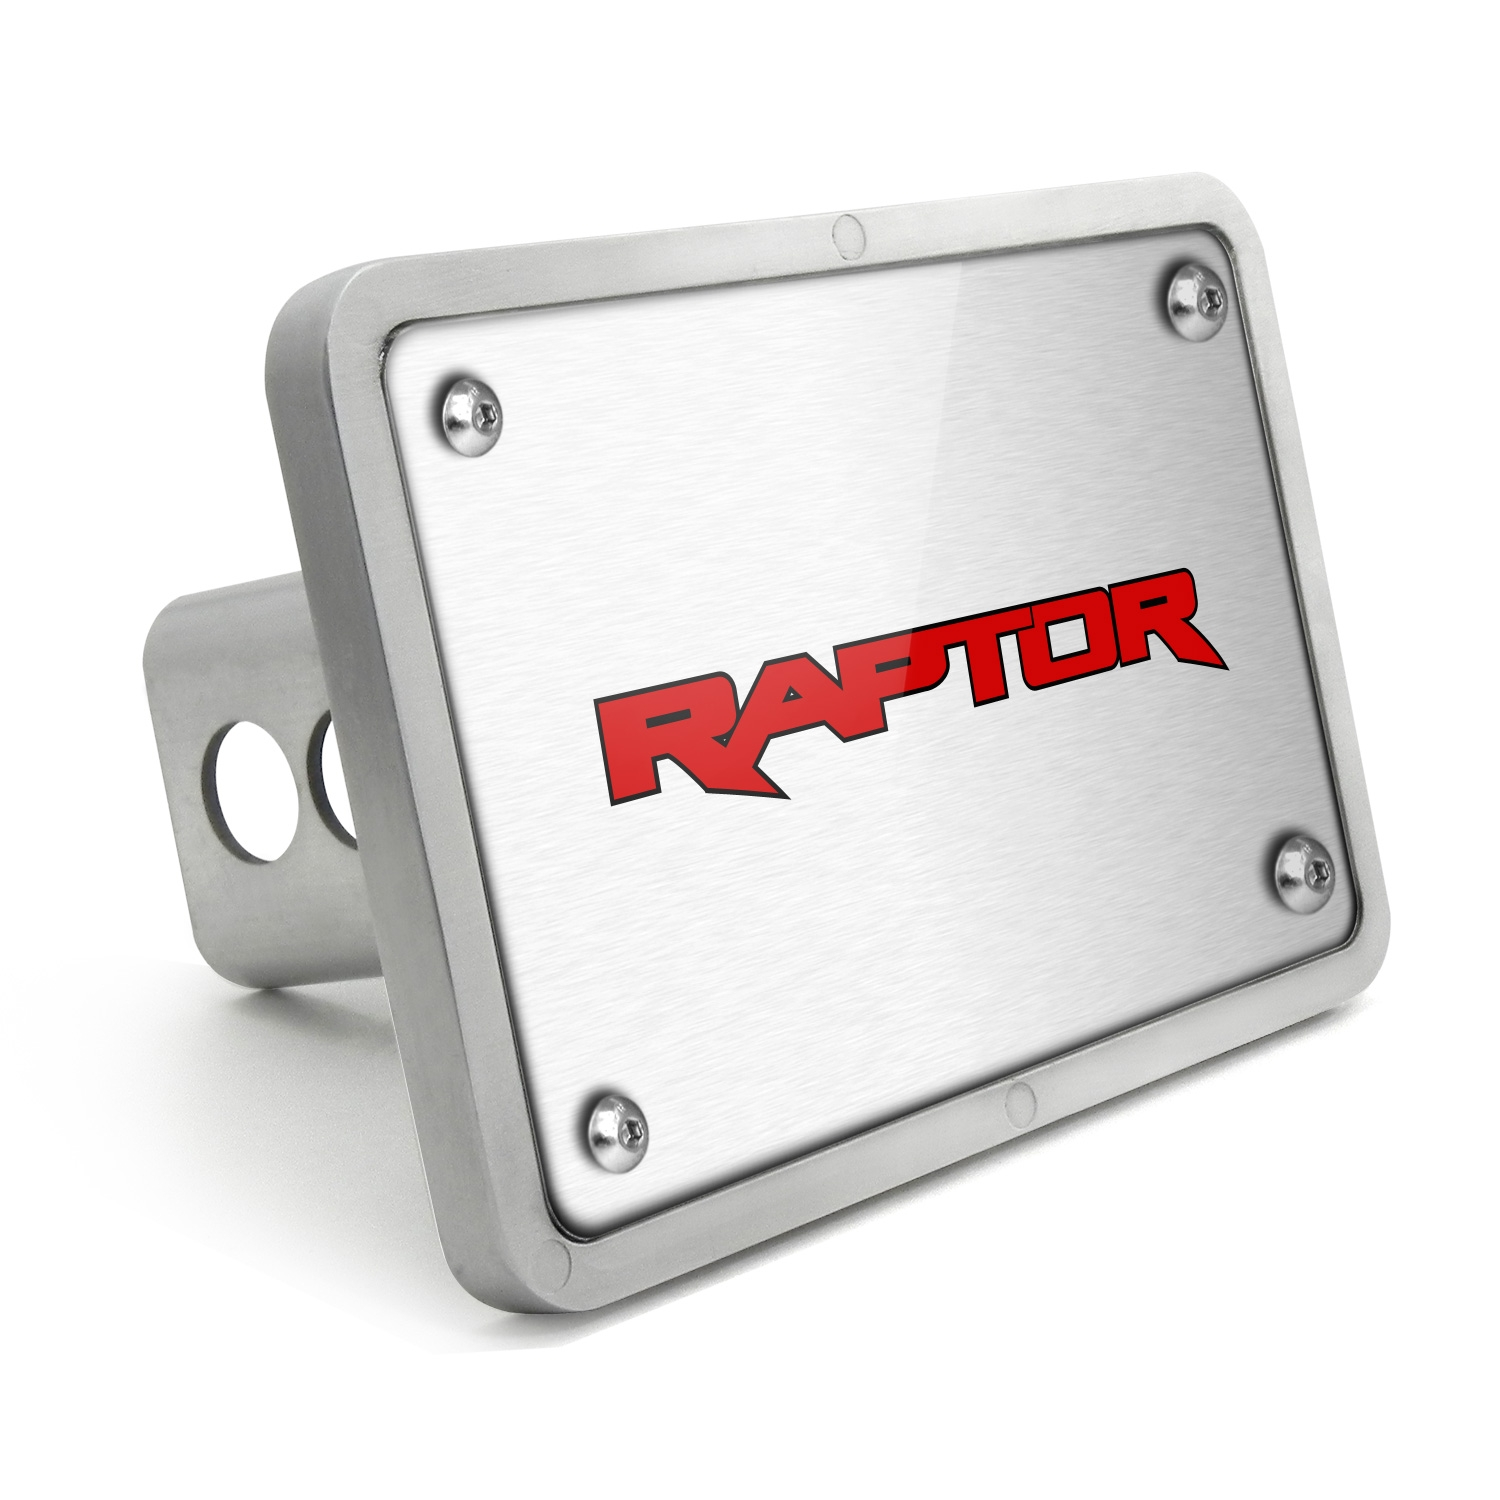 Ford Raptor 2017 in Red UV Graphic Brushed Silver Billet Aluminum 2 inch Tow Hitch Cover